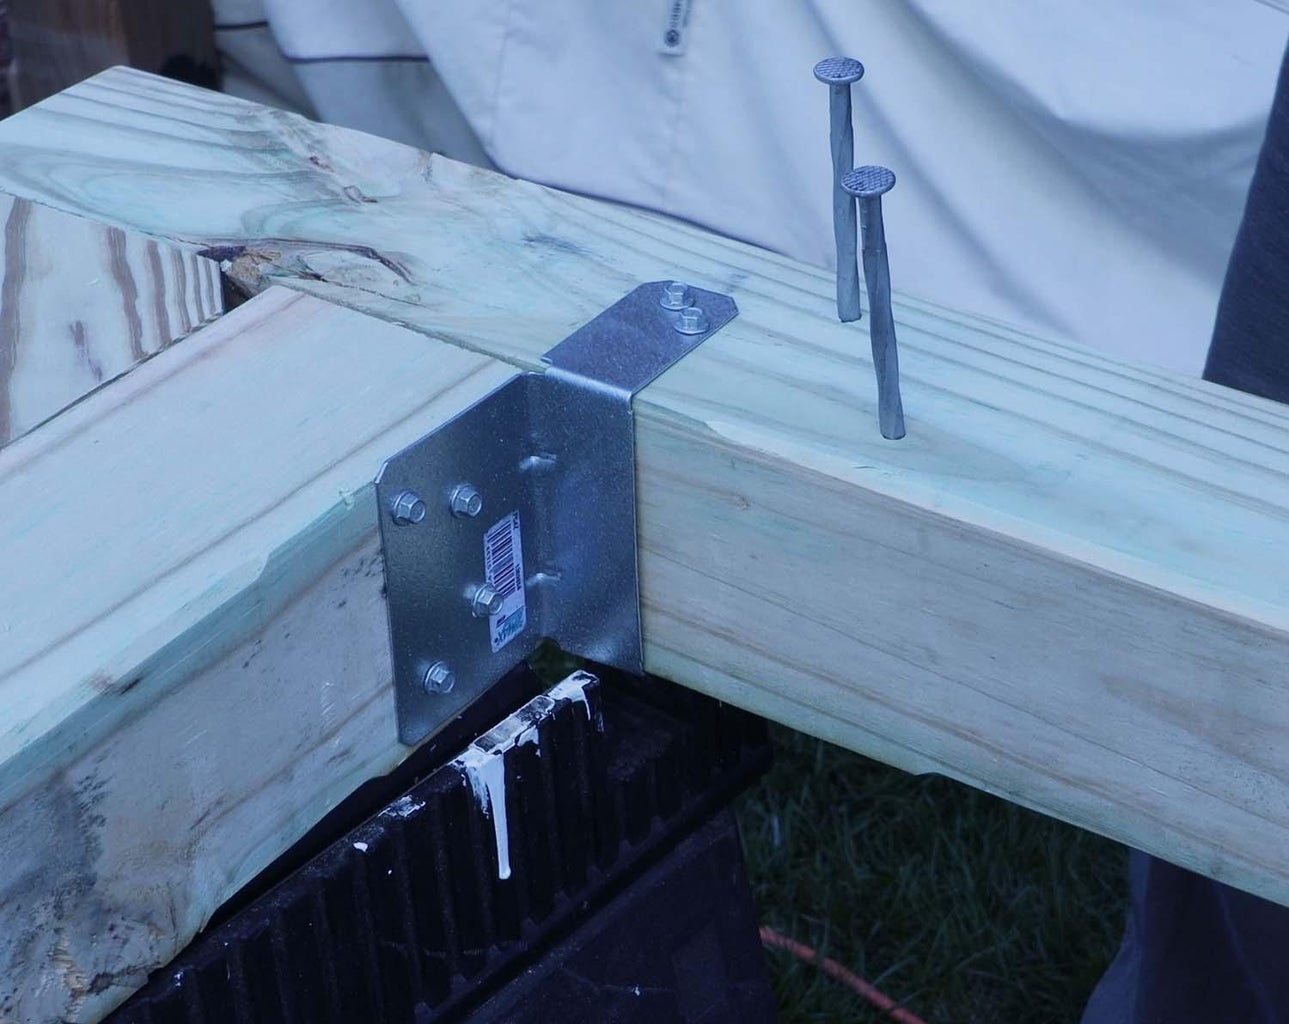 Measure for Spacer Placement, Chamfer Edges, Start Timber Ties